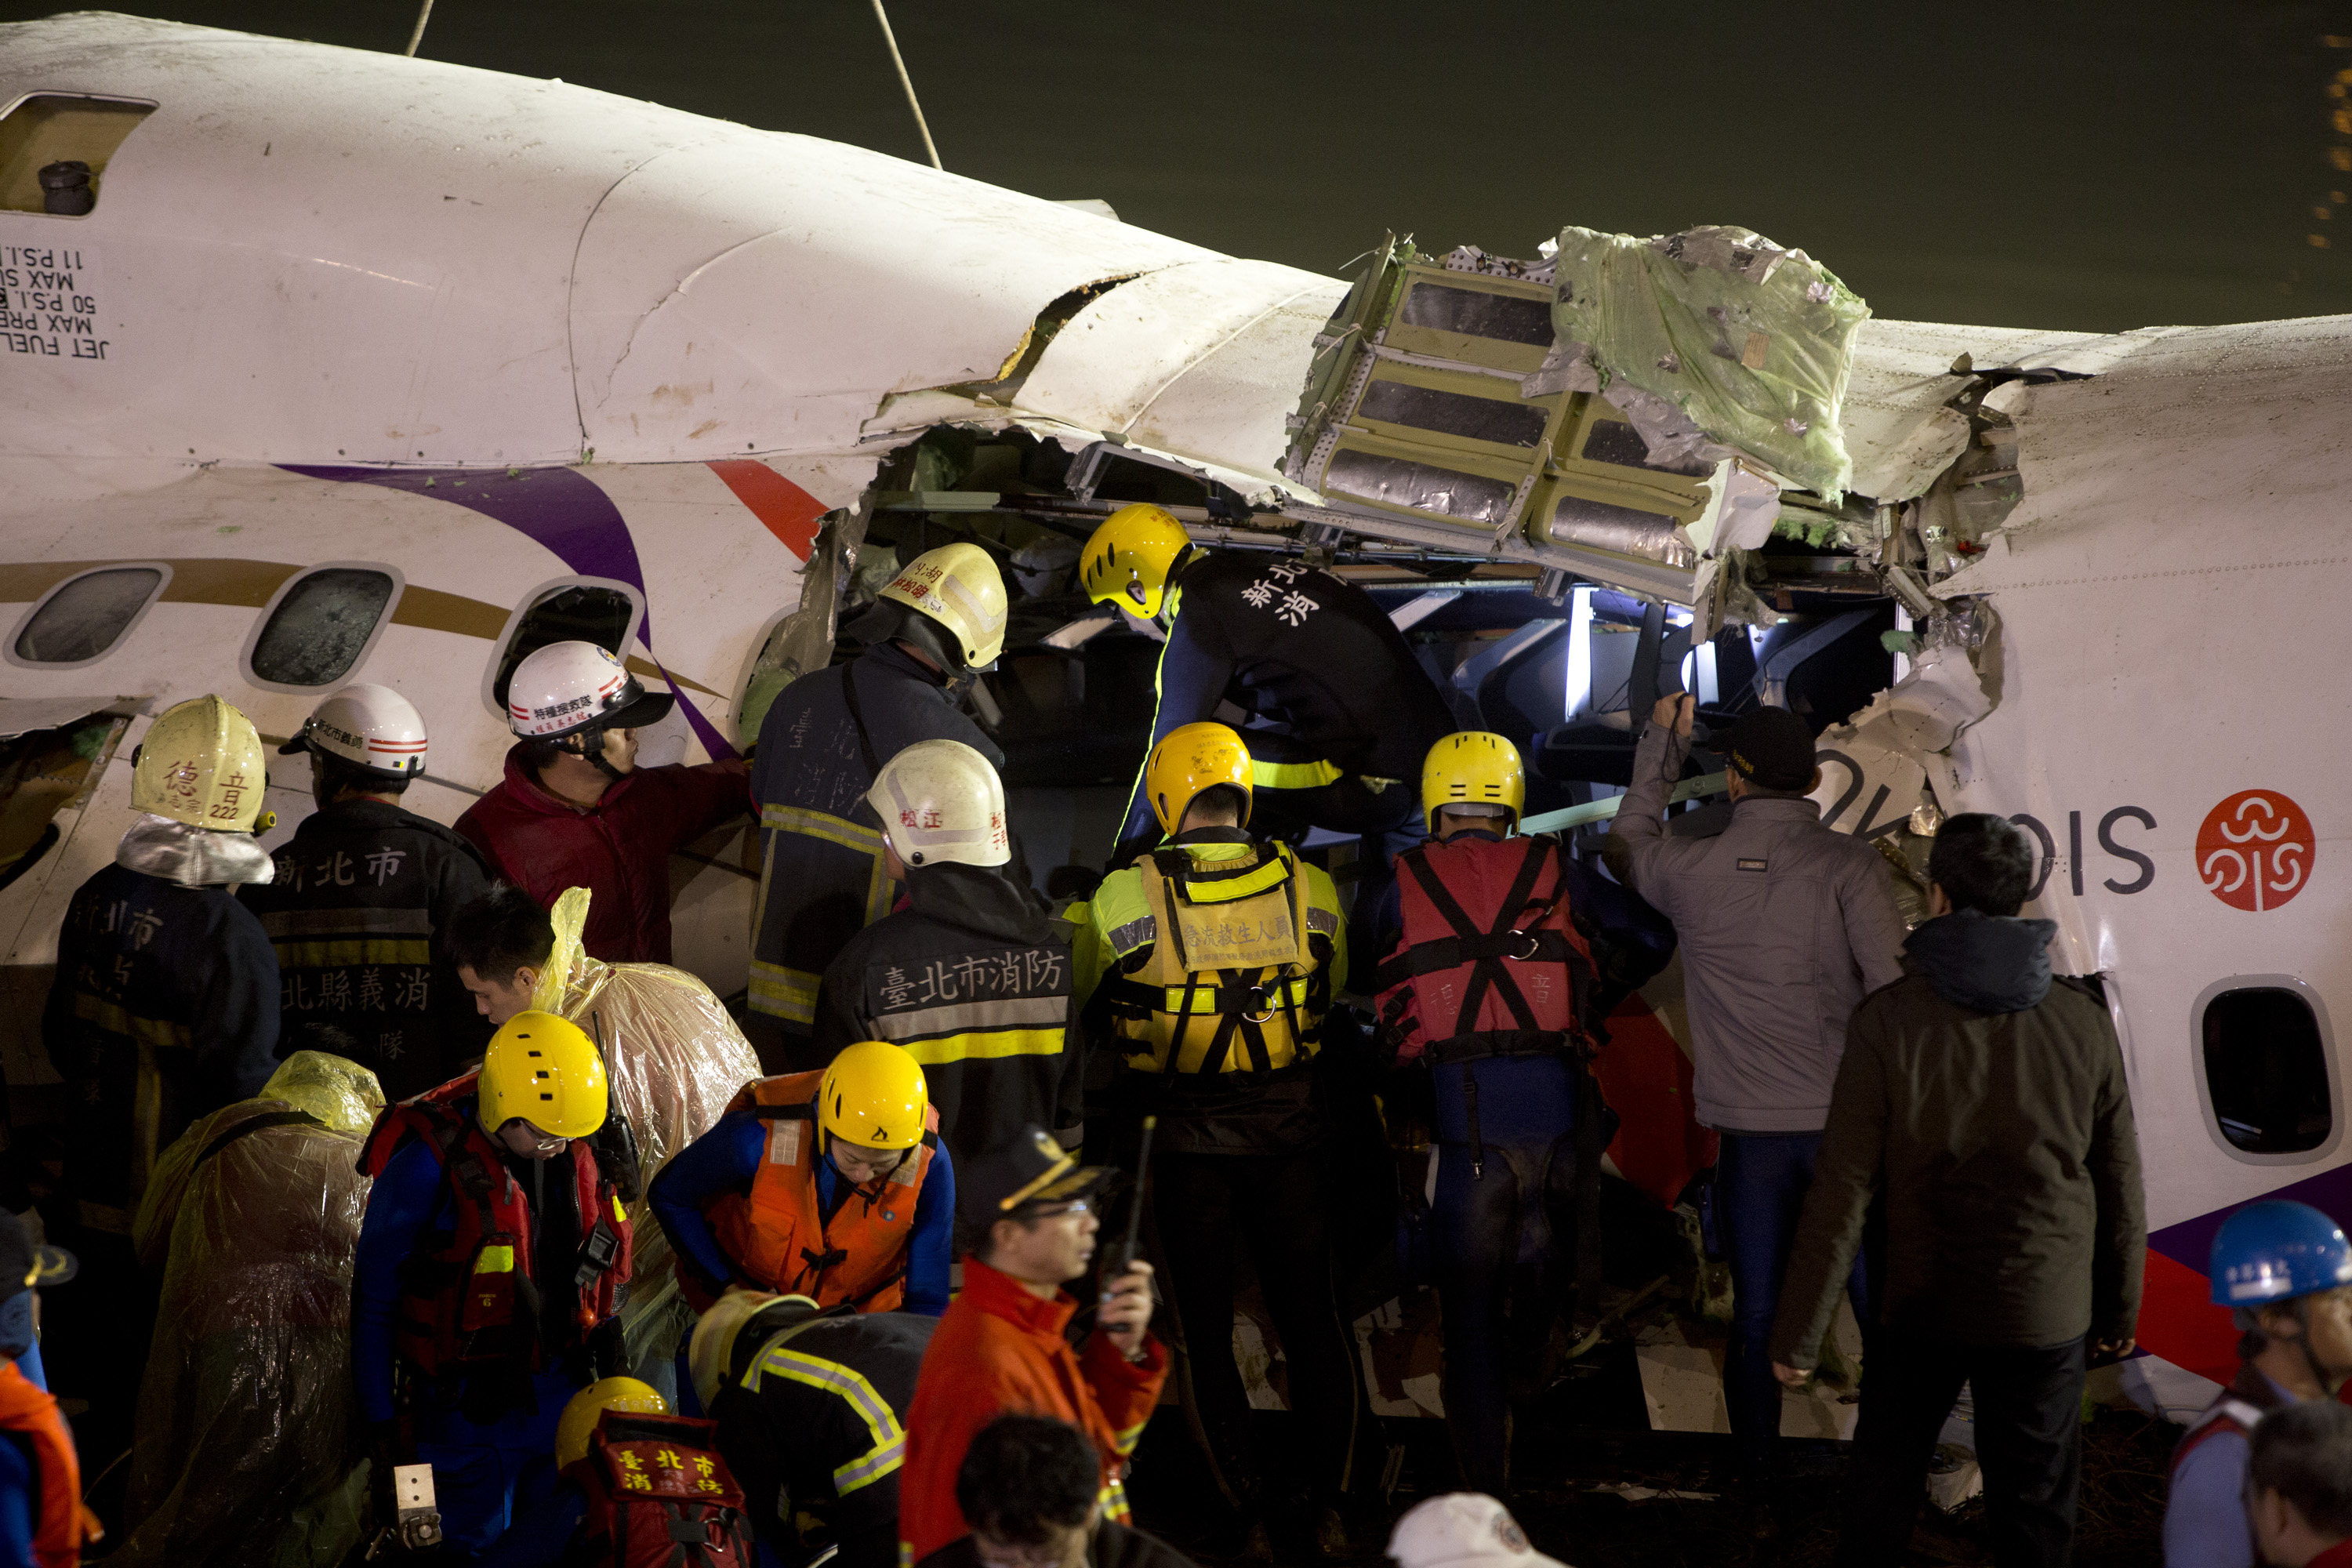 TAIPEI, TAIWAN - FEBRUARY 04: Rescuers check the wreckage of the TransAsia ATR 72-600 on the Keelung river at New Taipei City on February 4, 2015.